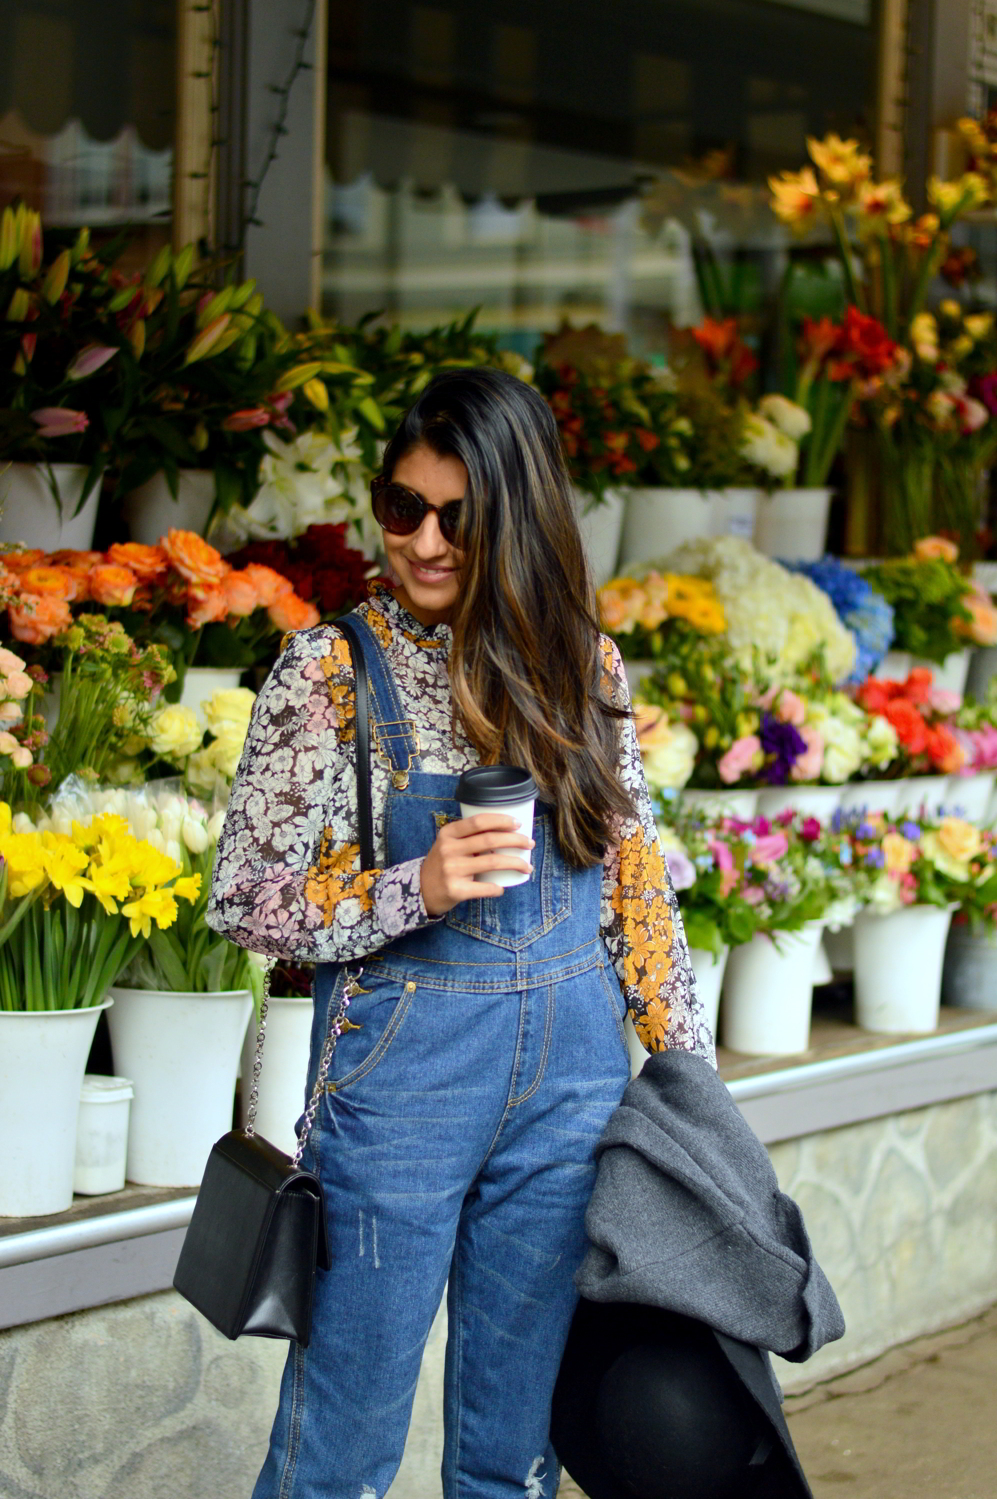 boyfriend-overalls-floral-blouse-spring-style-bud-stop-san-francisco-blogger-outfit 2